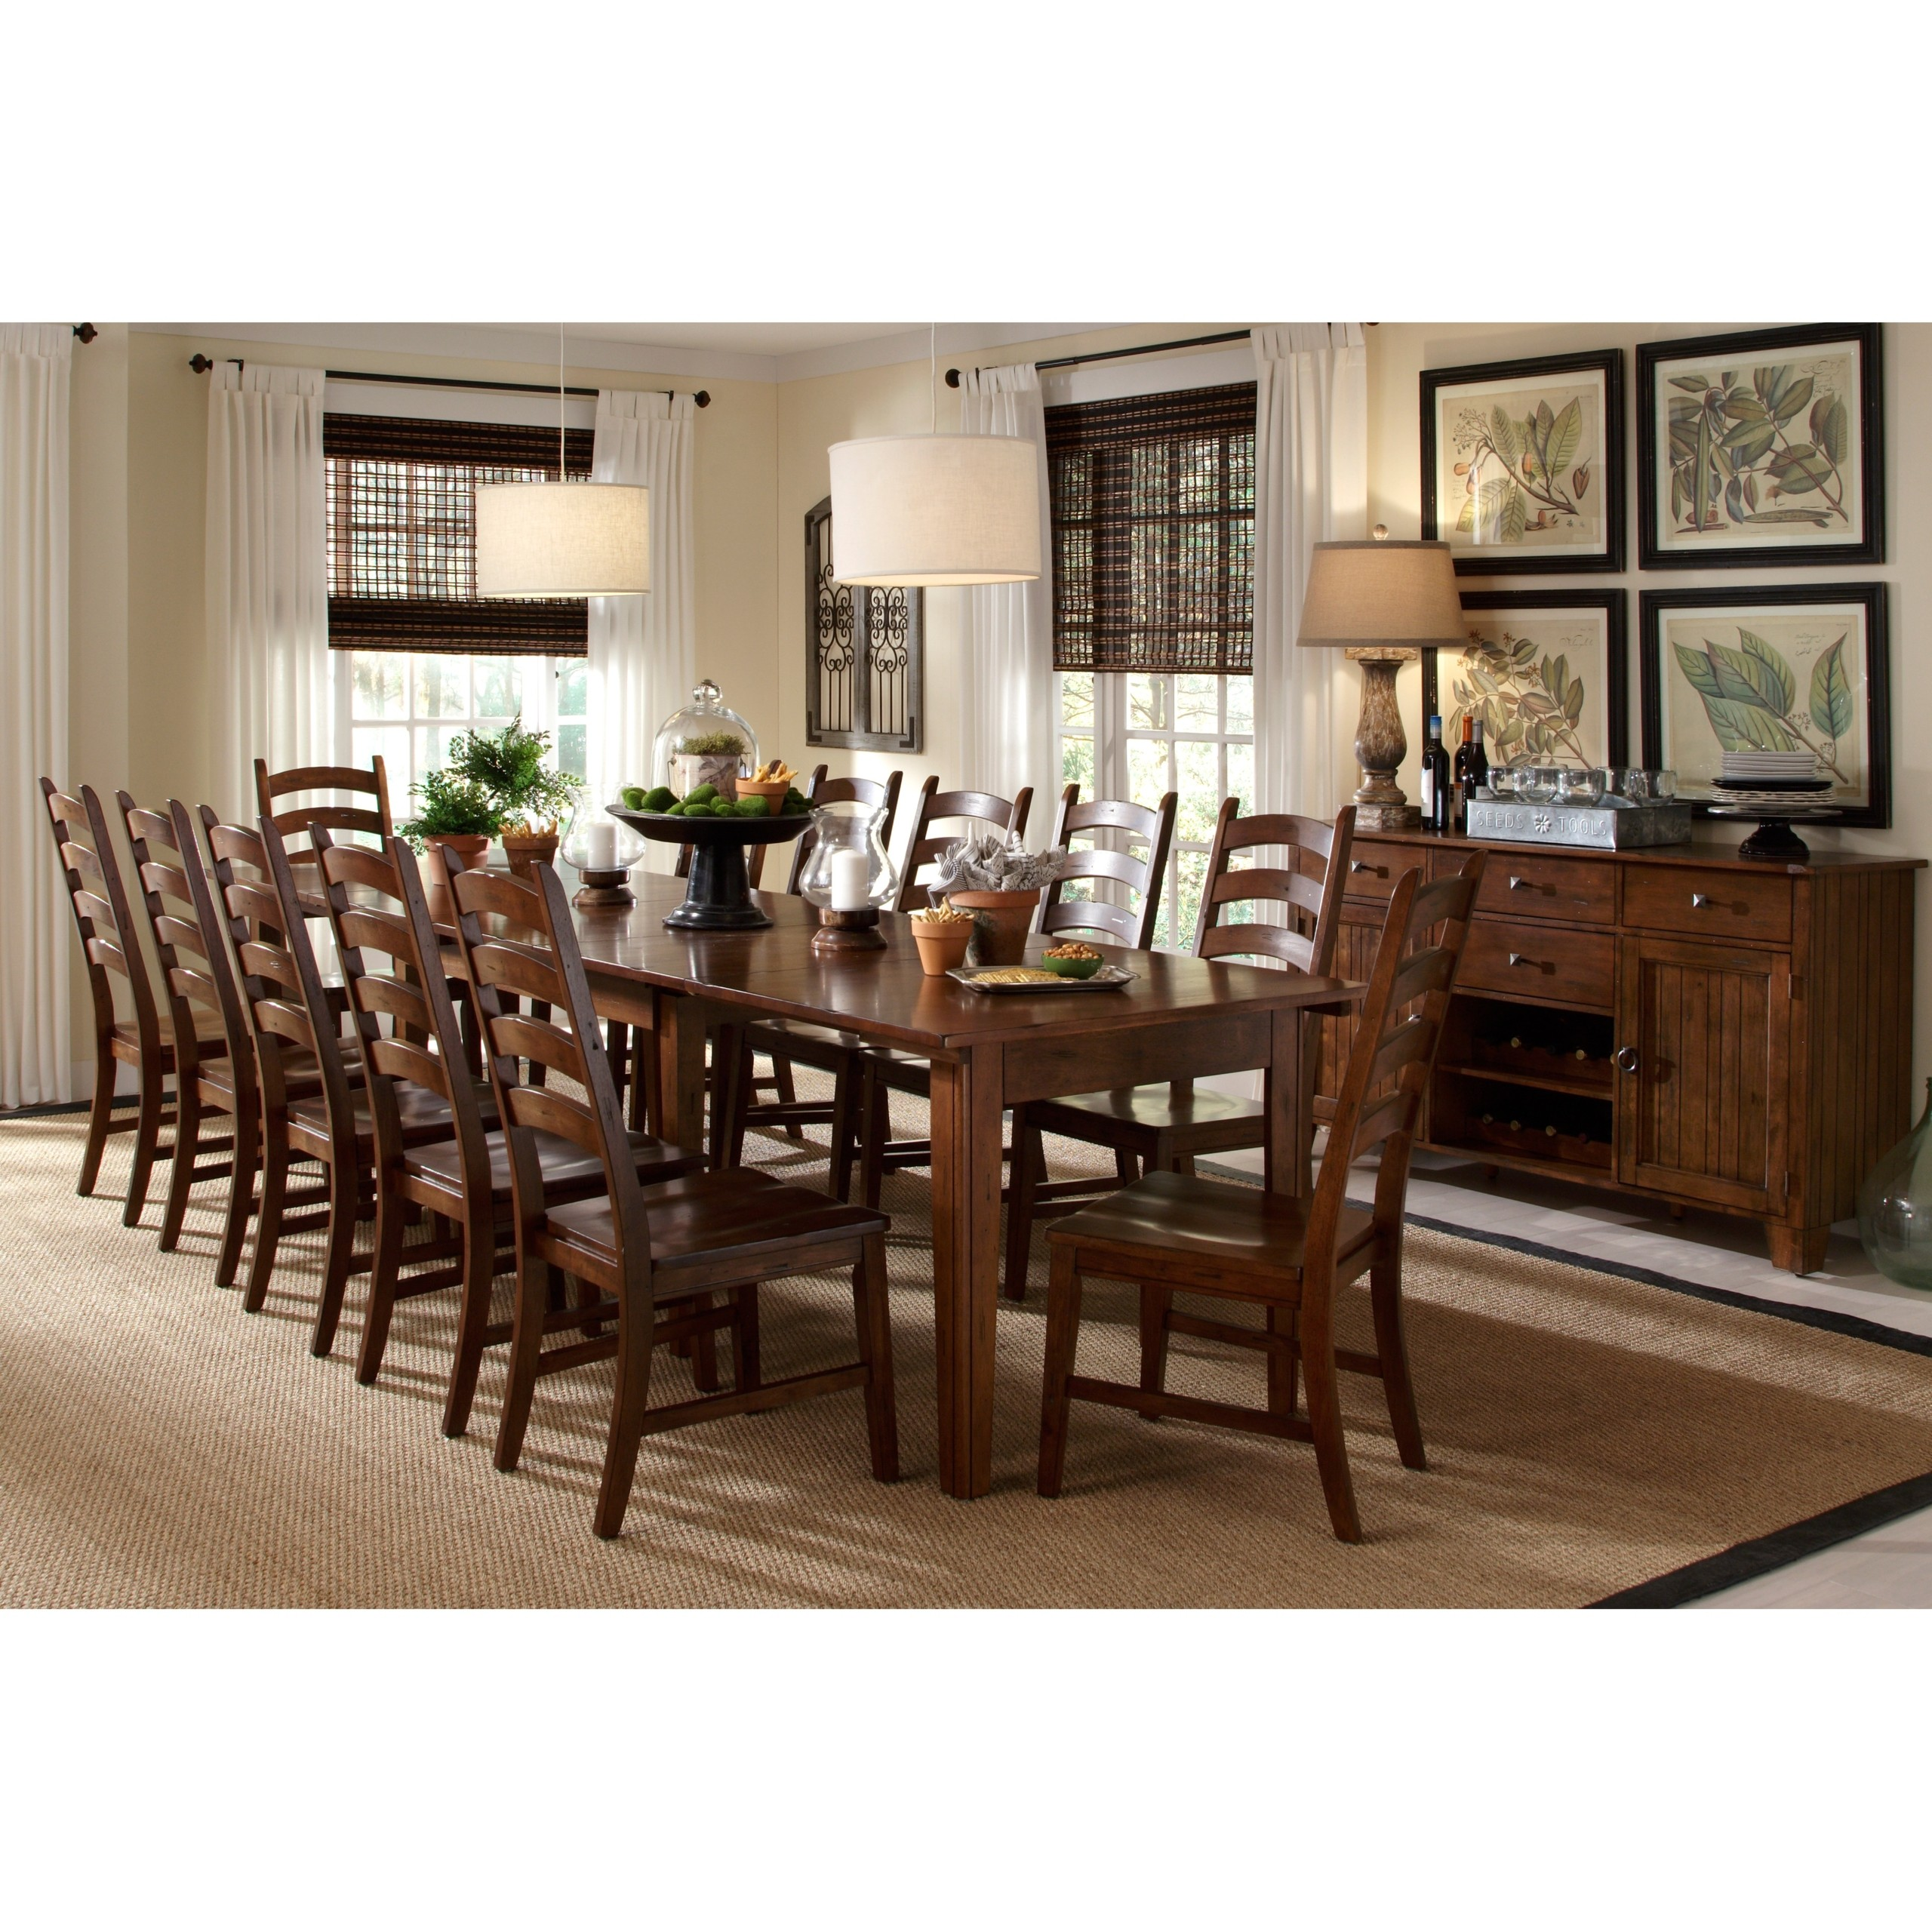 A america toluca dining table